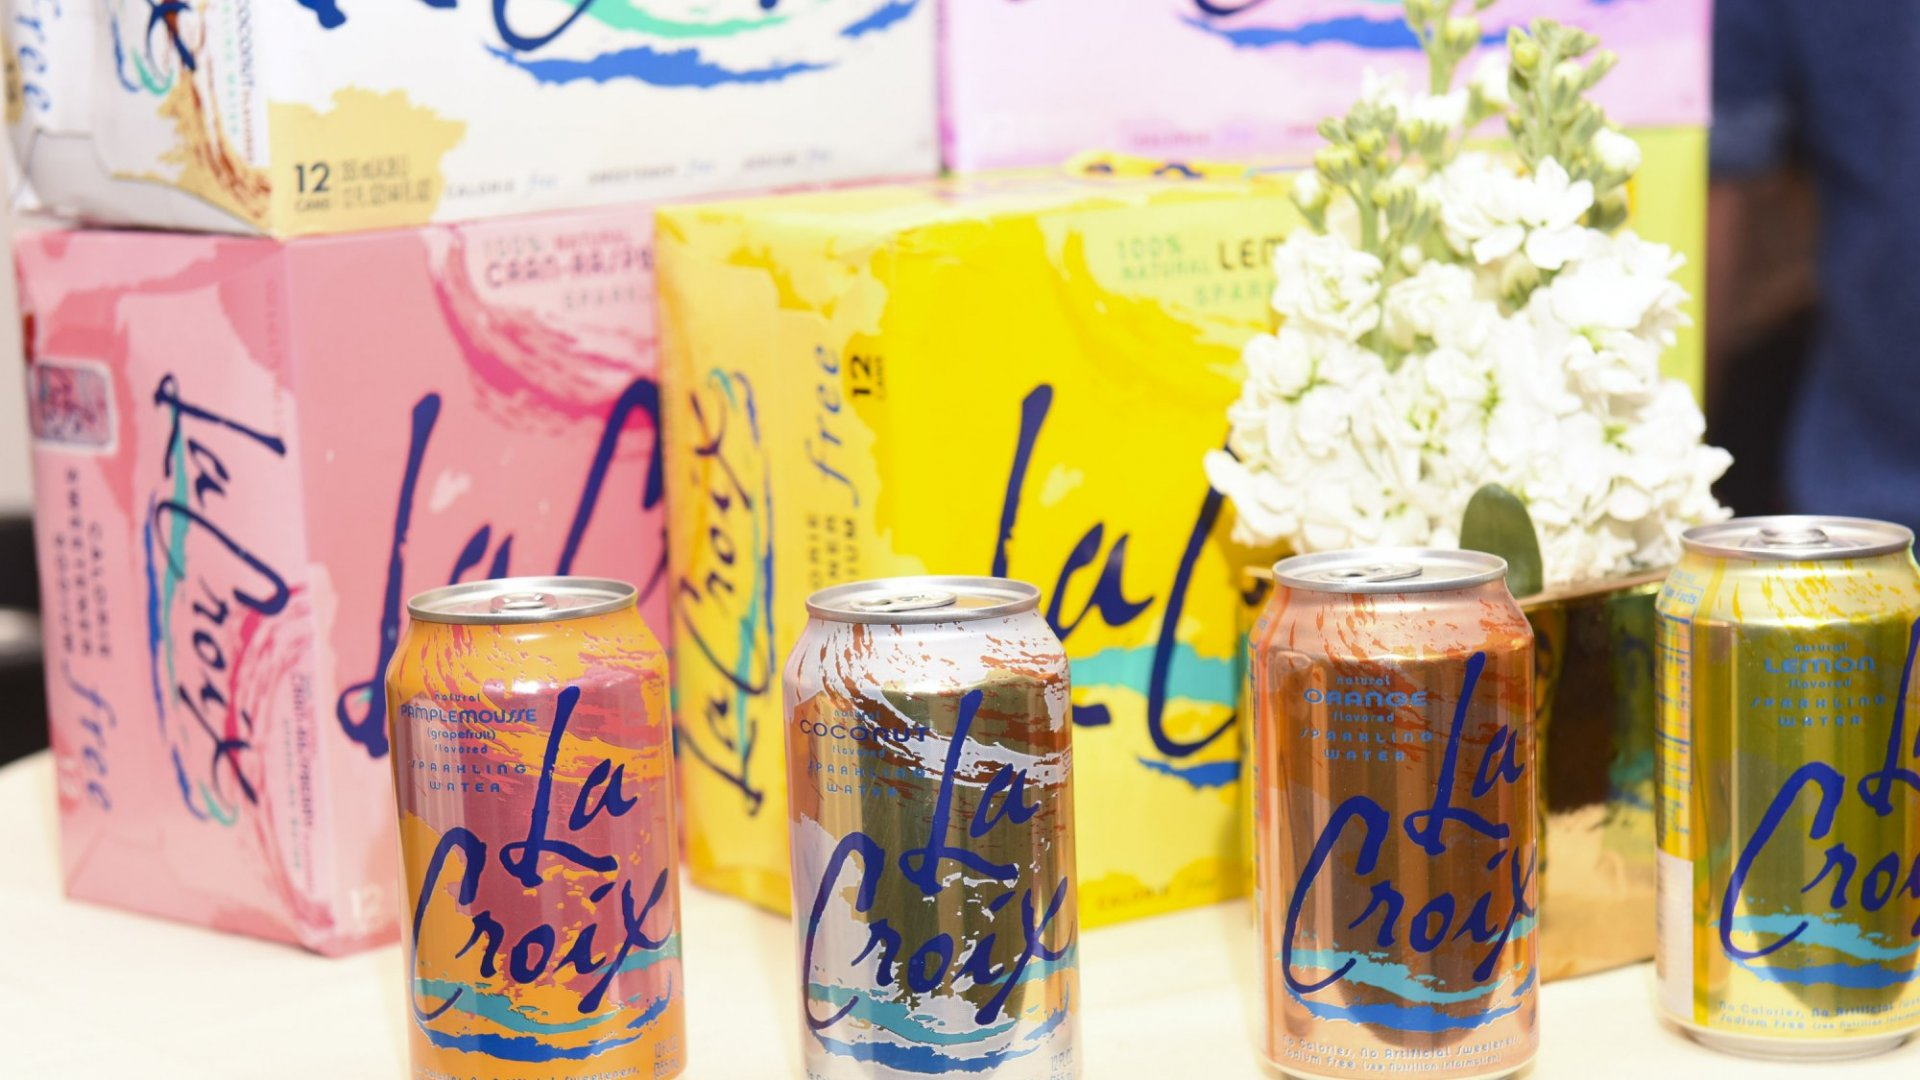 LaCroix Uses This Brilliant Tactic to Win Over Millennials by the Droves